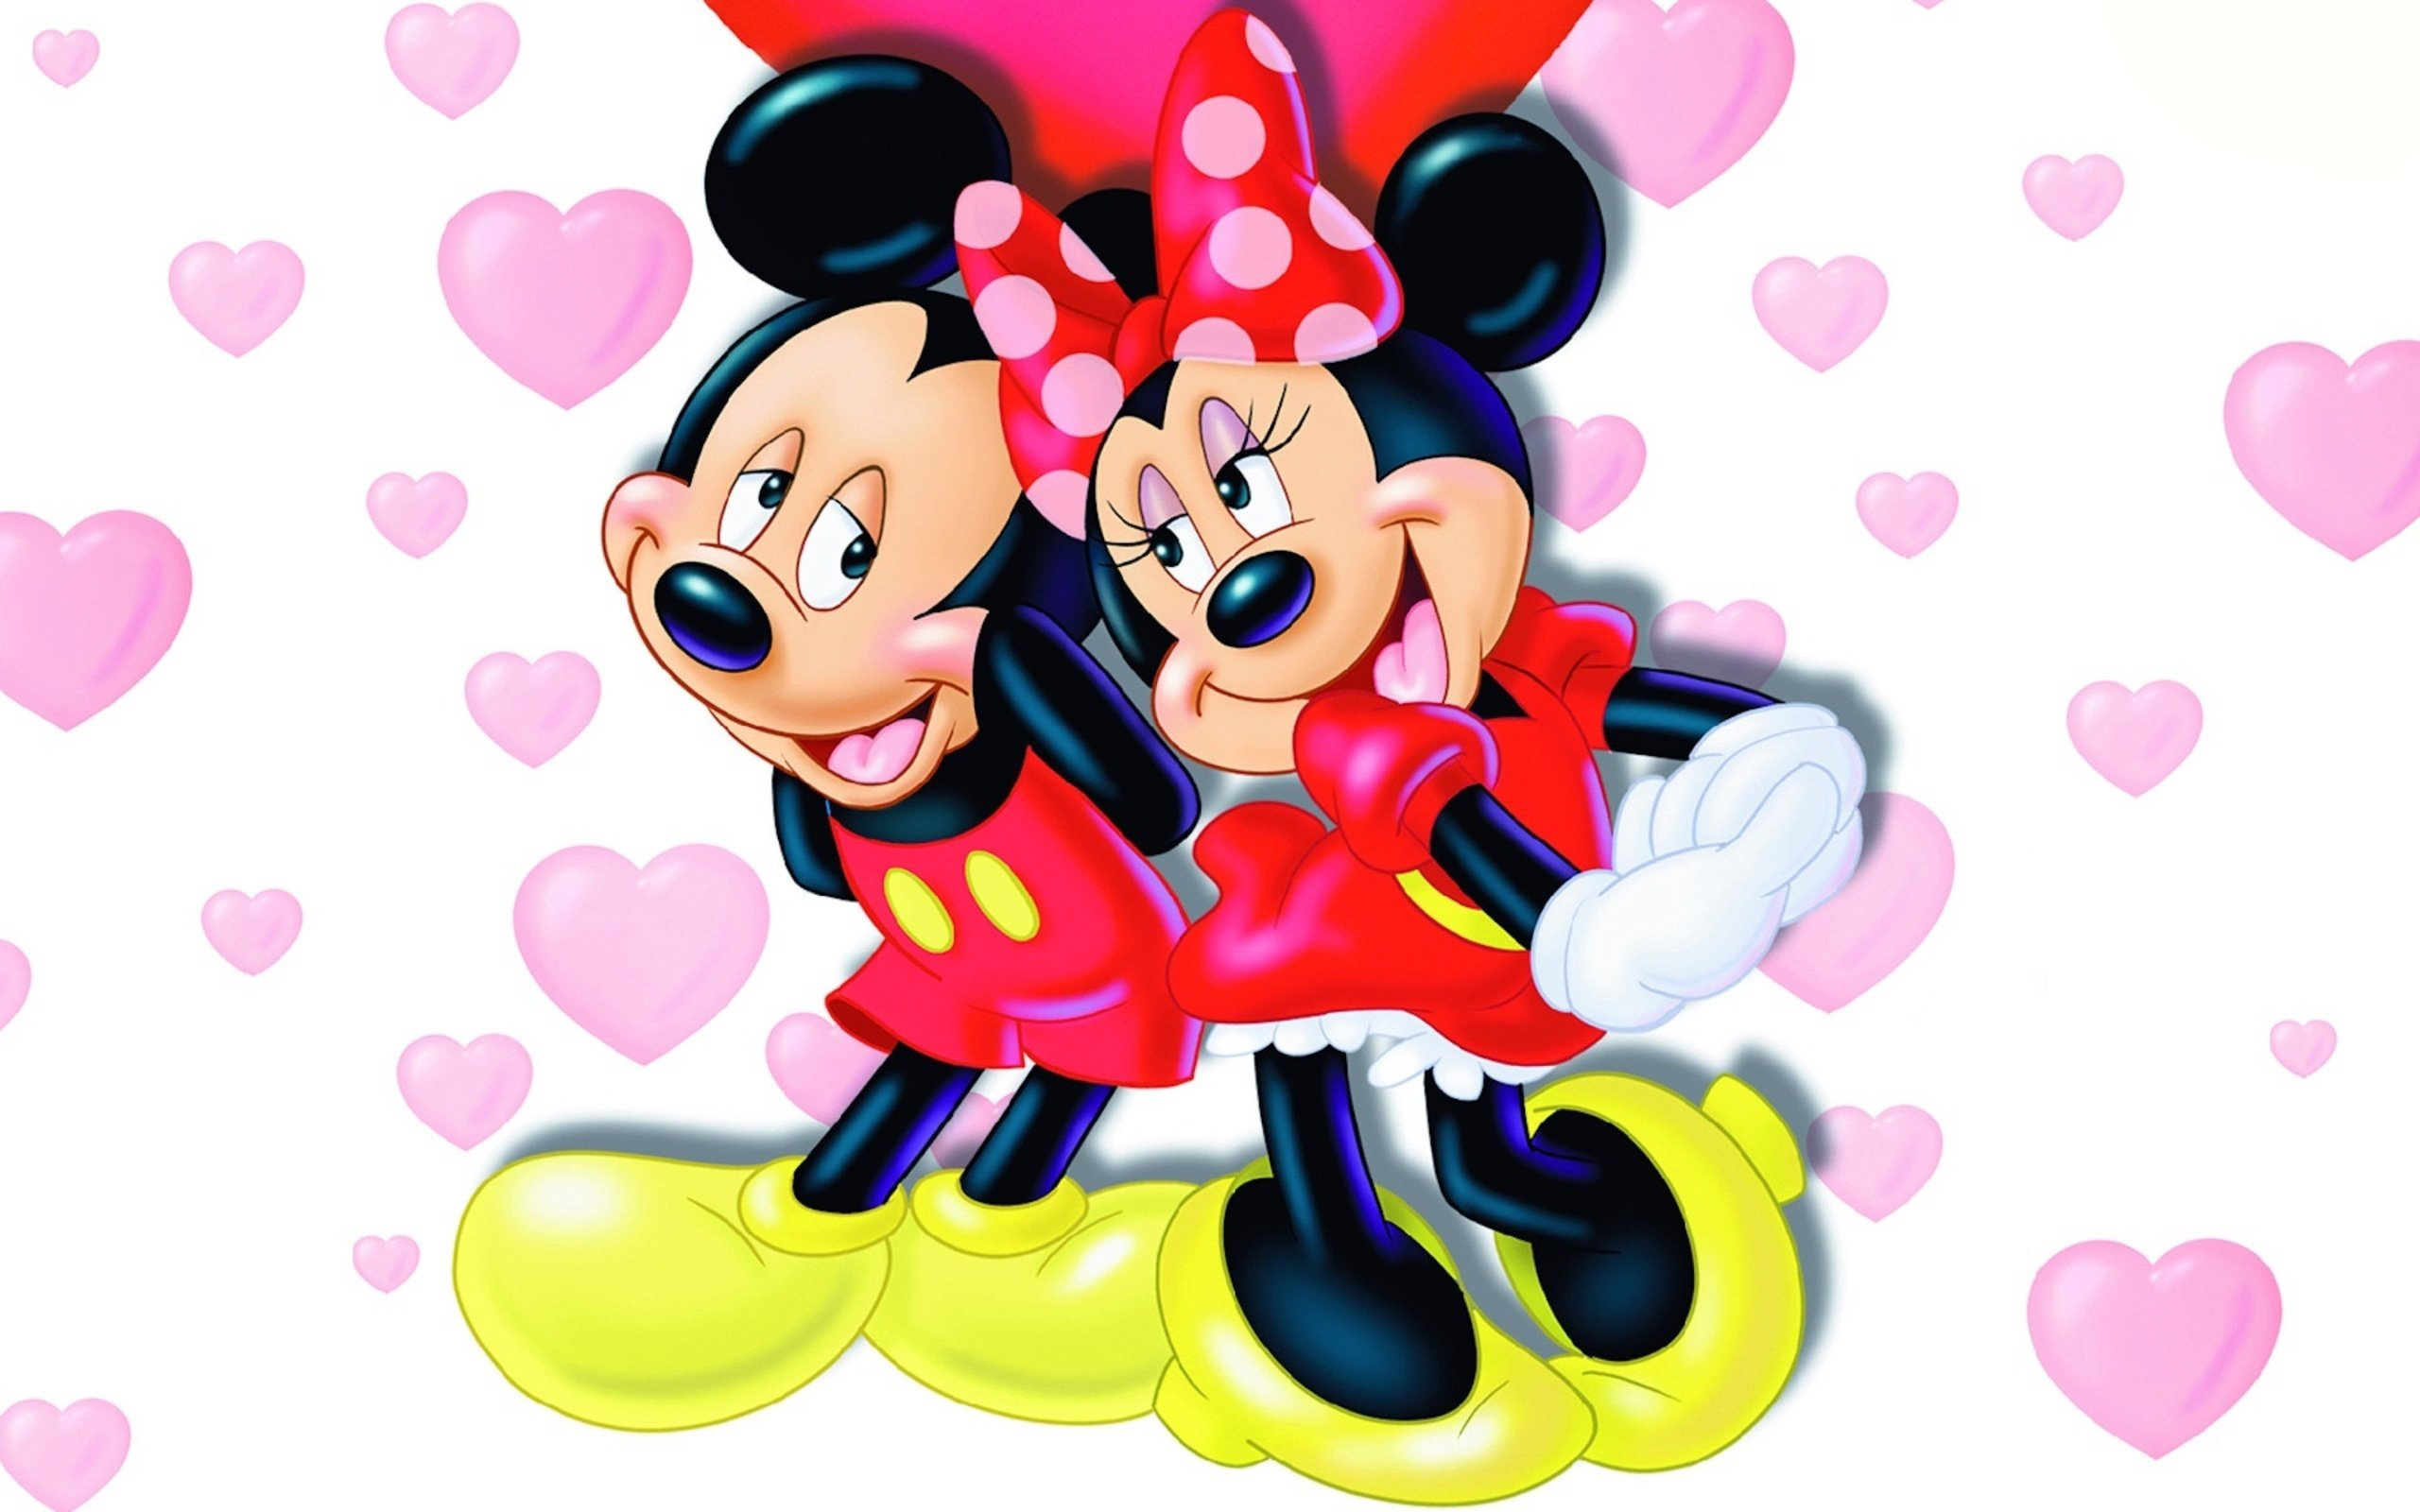 Mickey and minnie mouse wallpapers wallpapersafari - Mickey mouse minnie cienta ...